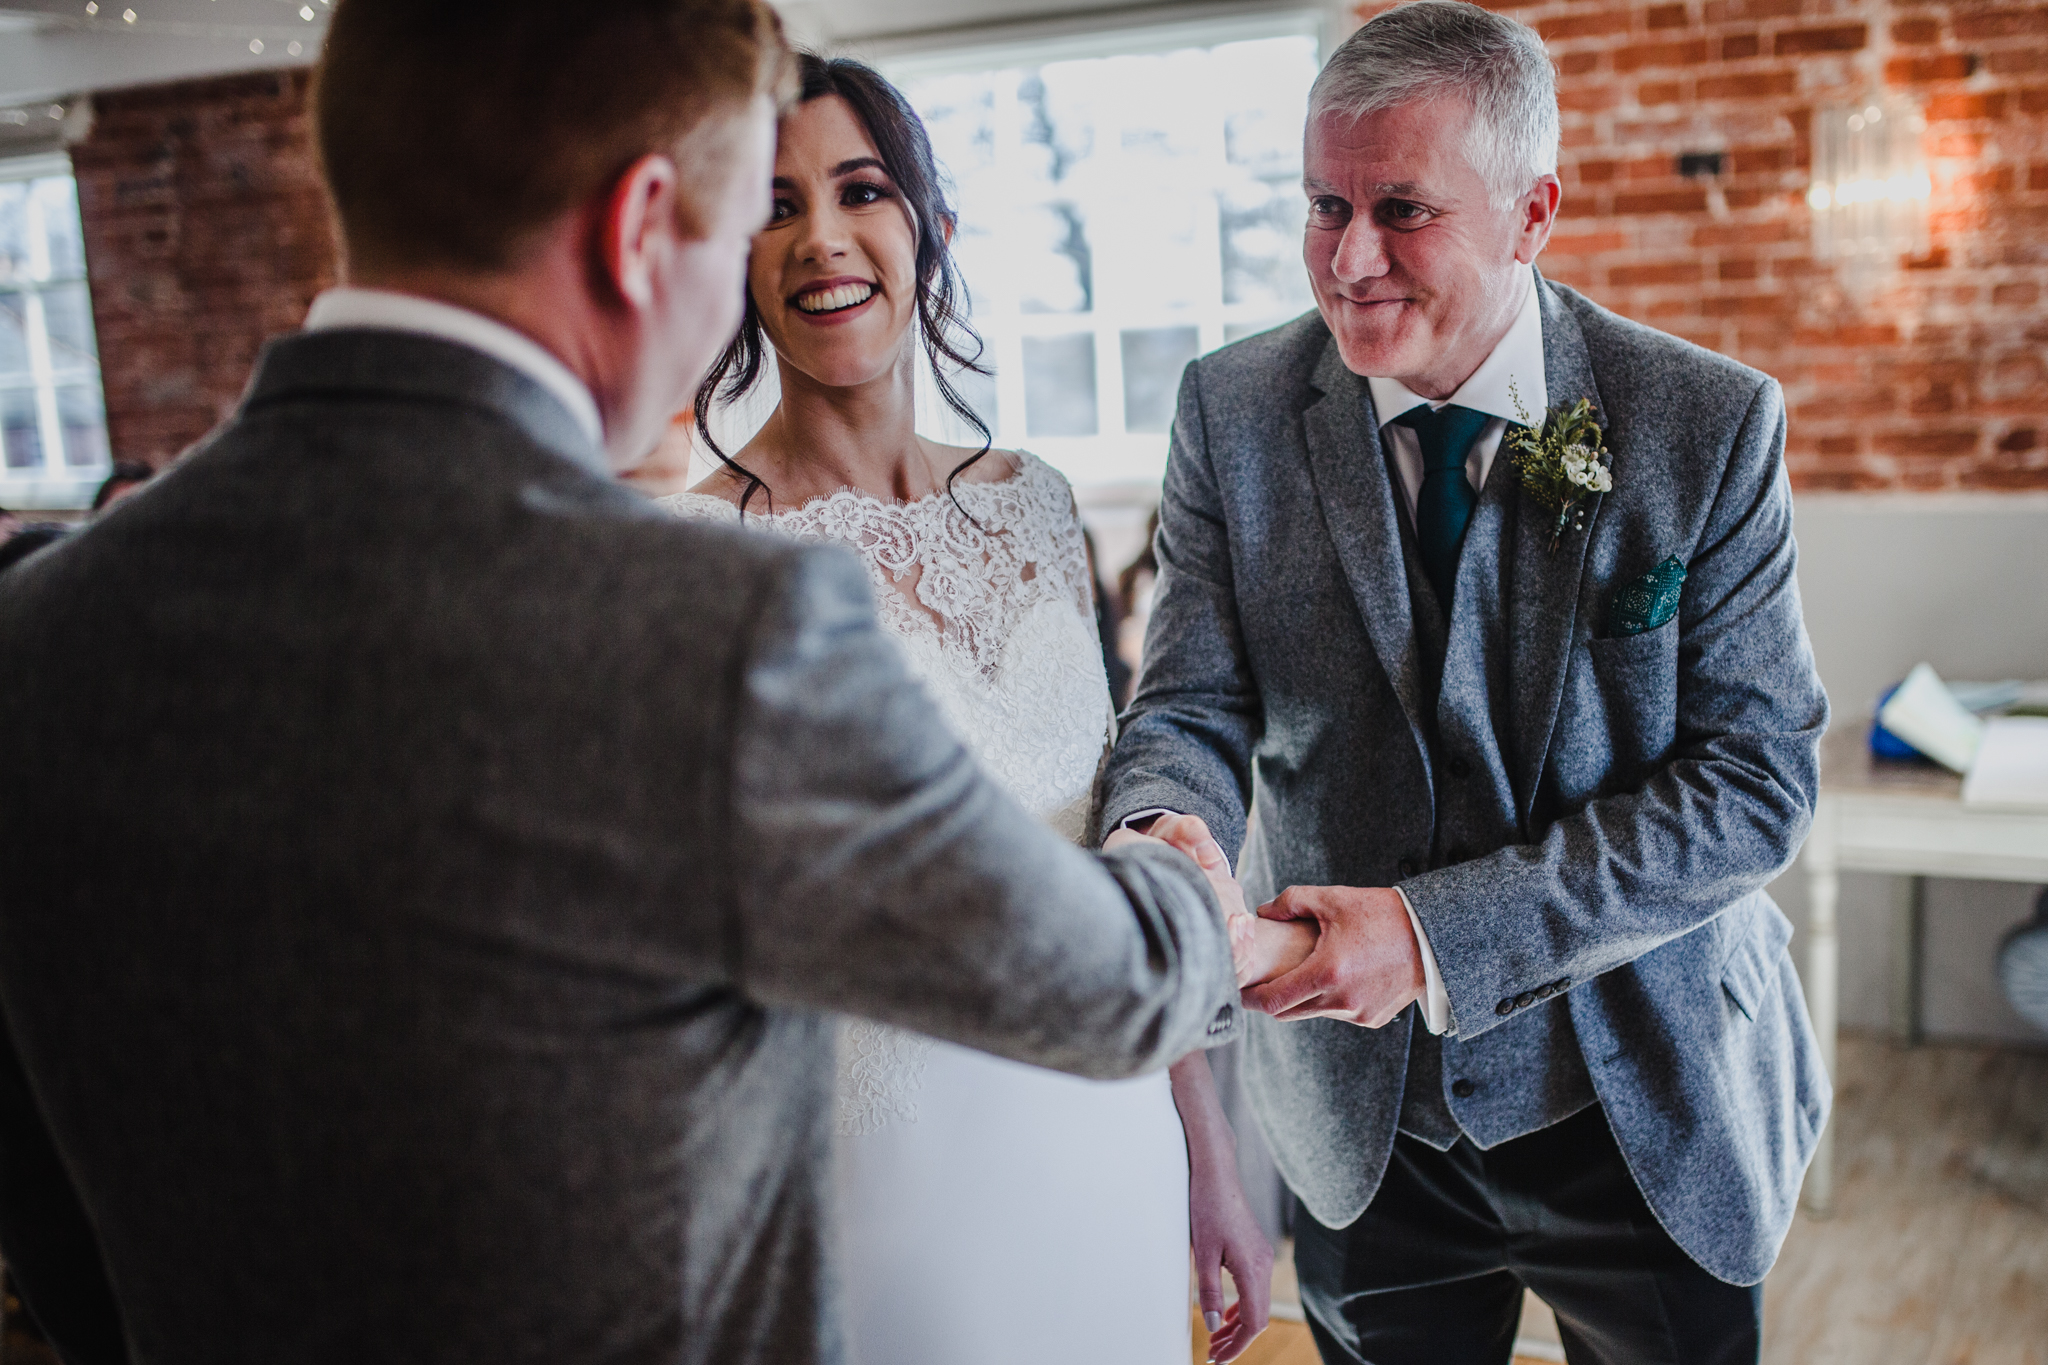 Father of the bride handing his daughter to her future husband